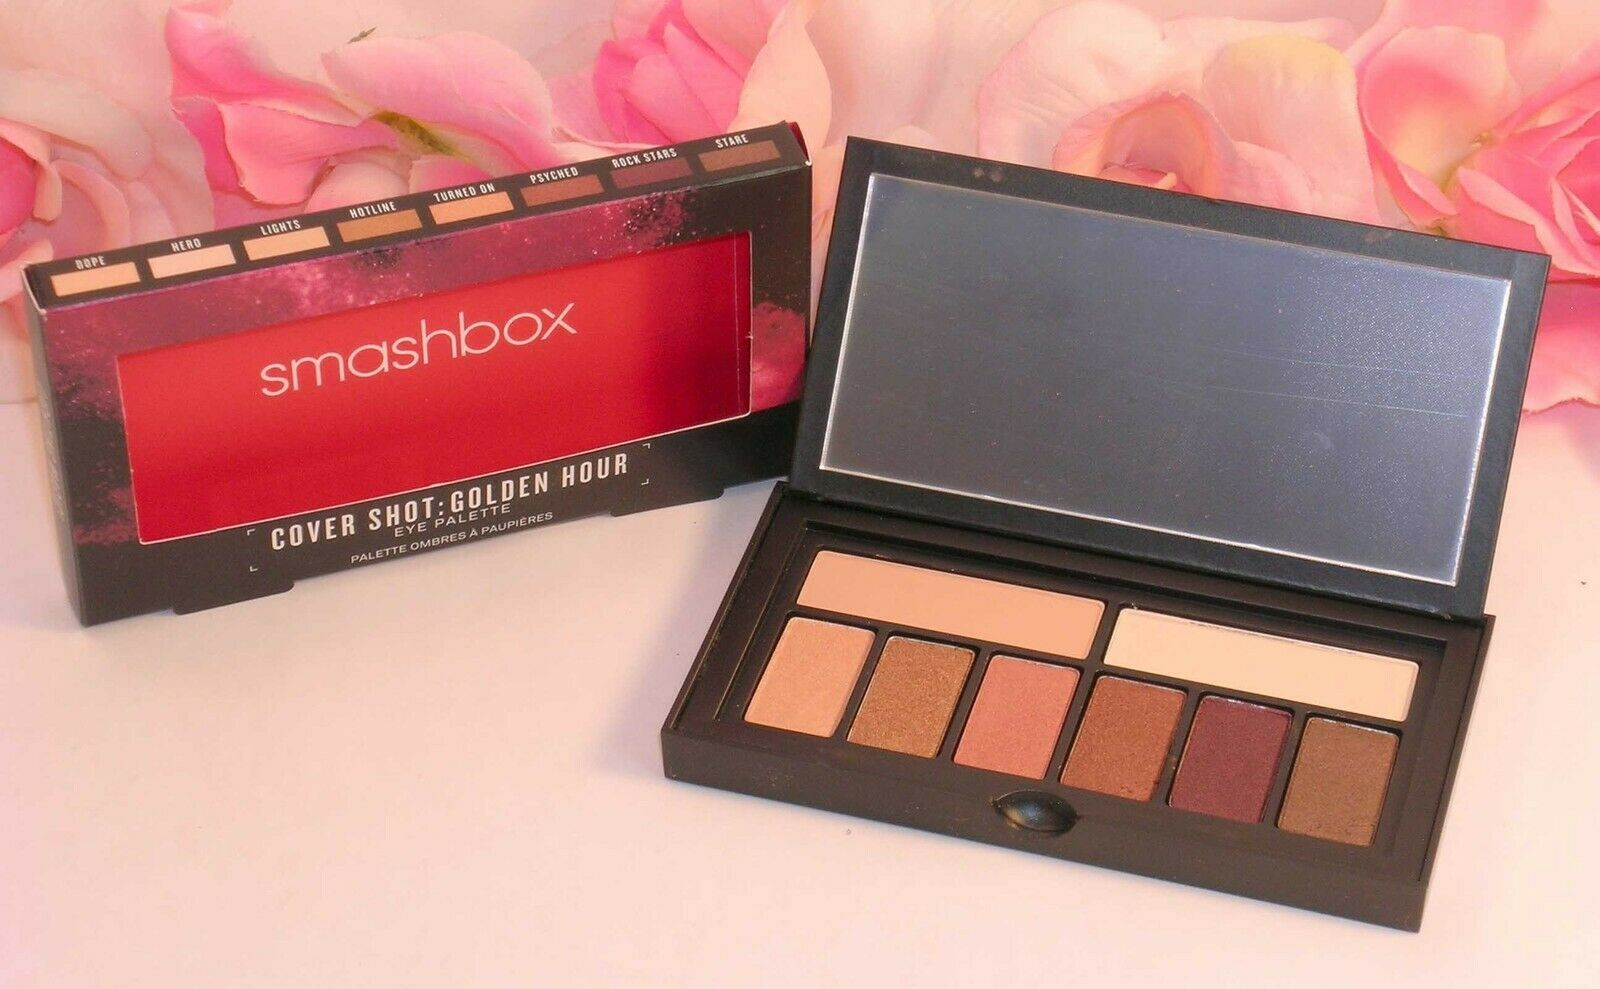 Primary image for New Smashbox Cover Shot Golden Hour Shadow Palette 8 Shades .27 oz / 7.8 g